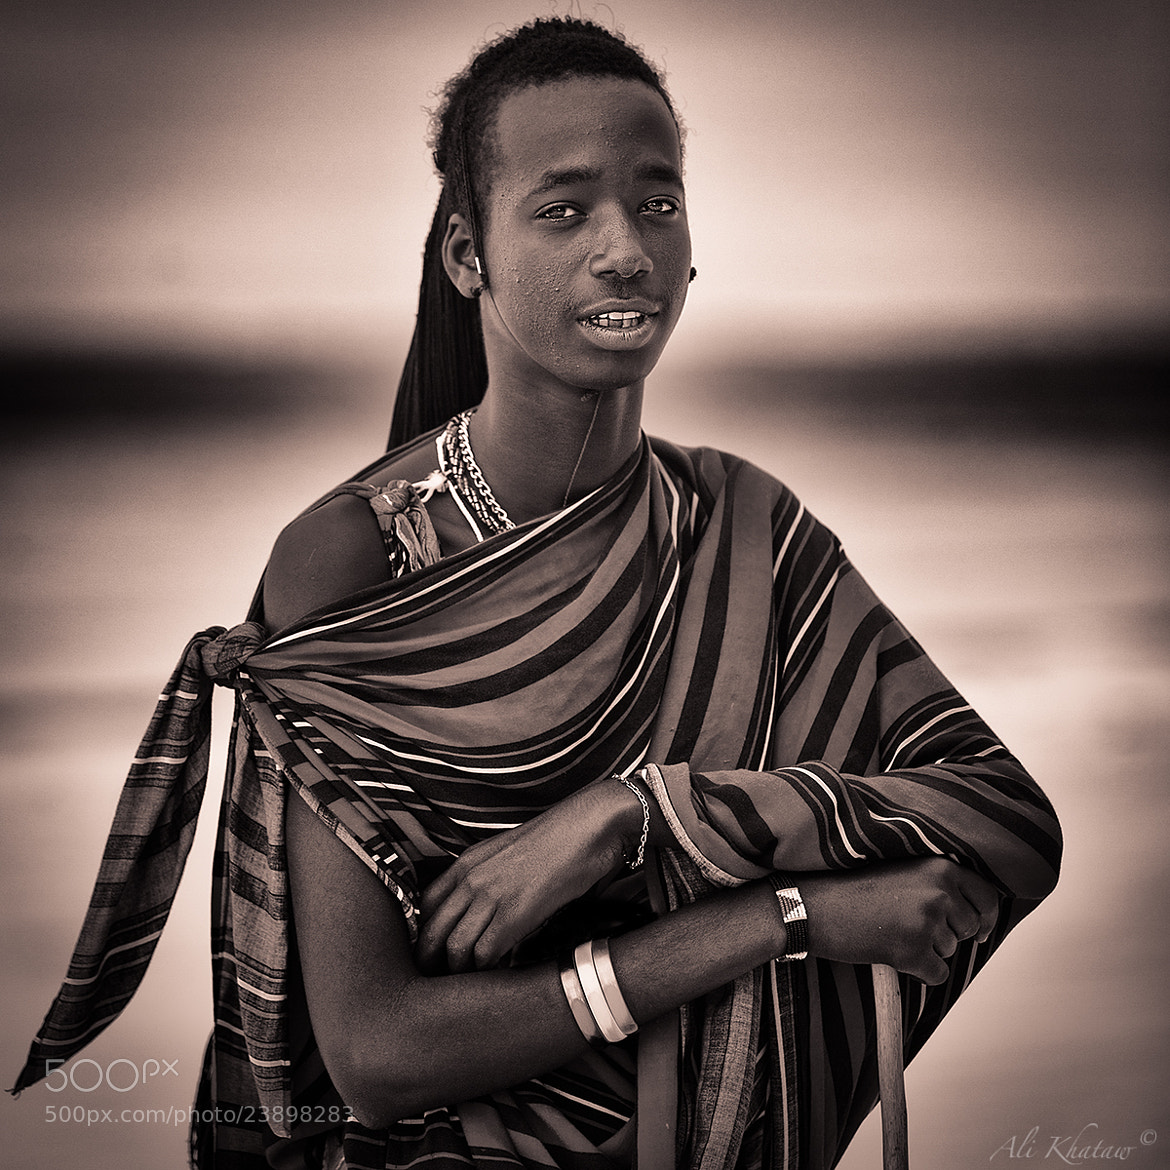 Photograph Masai by Ali Khataw on 500px